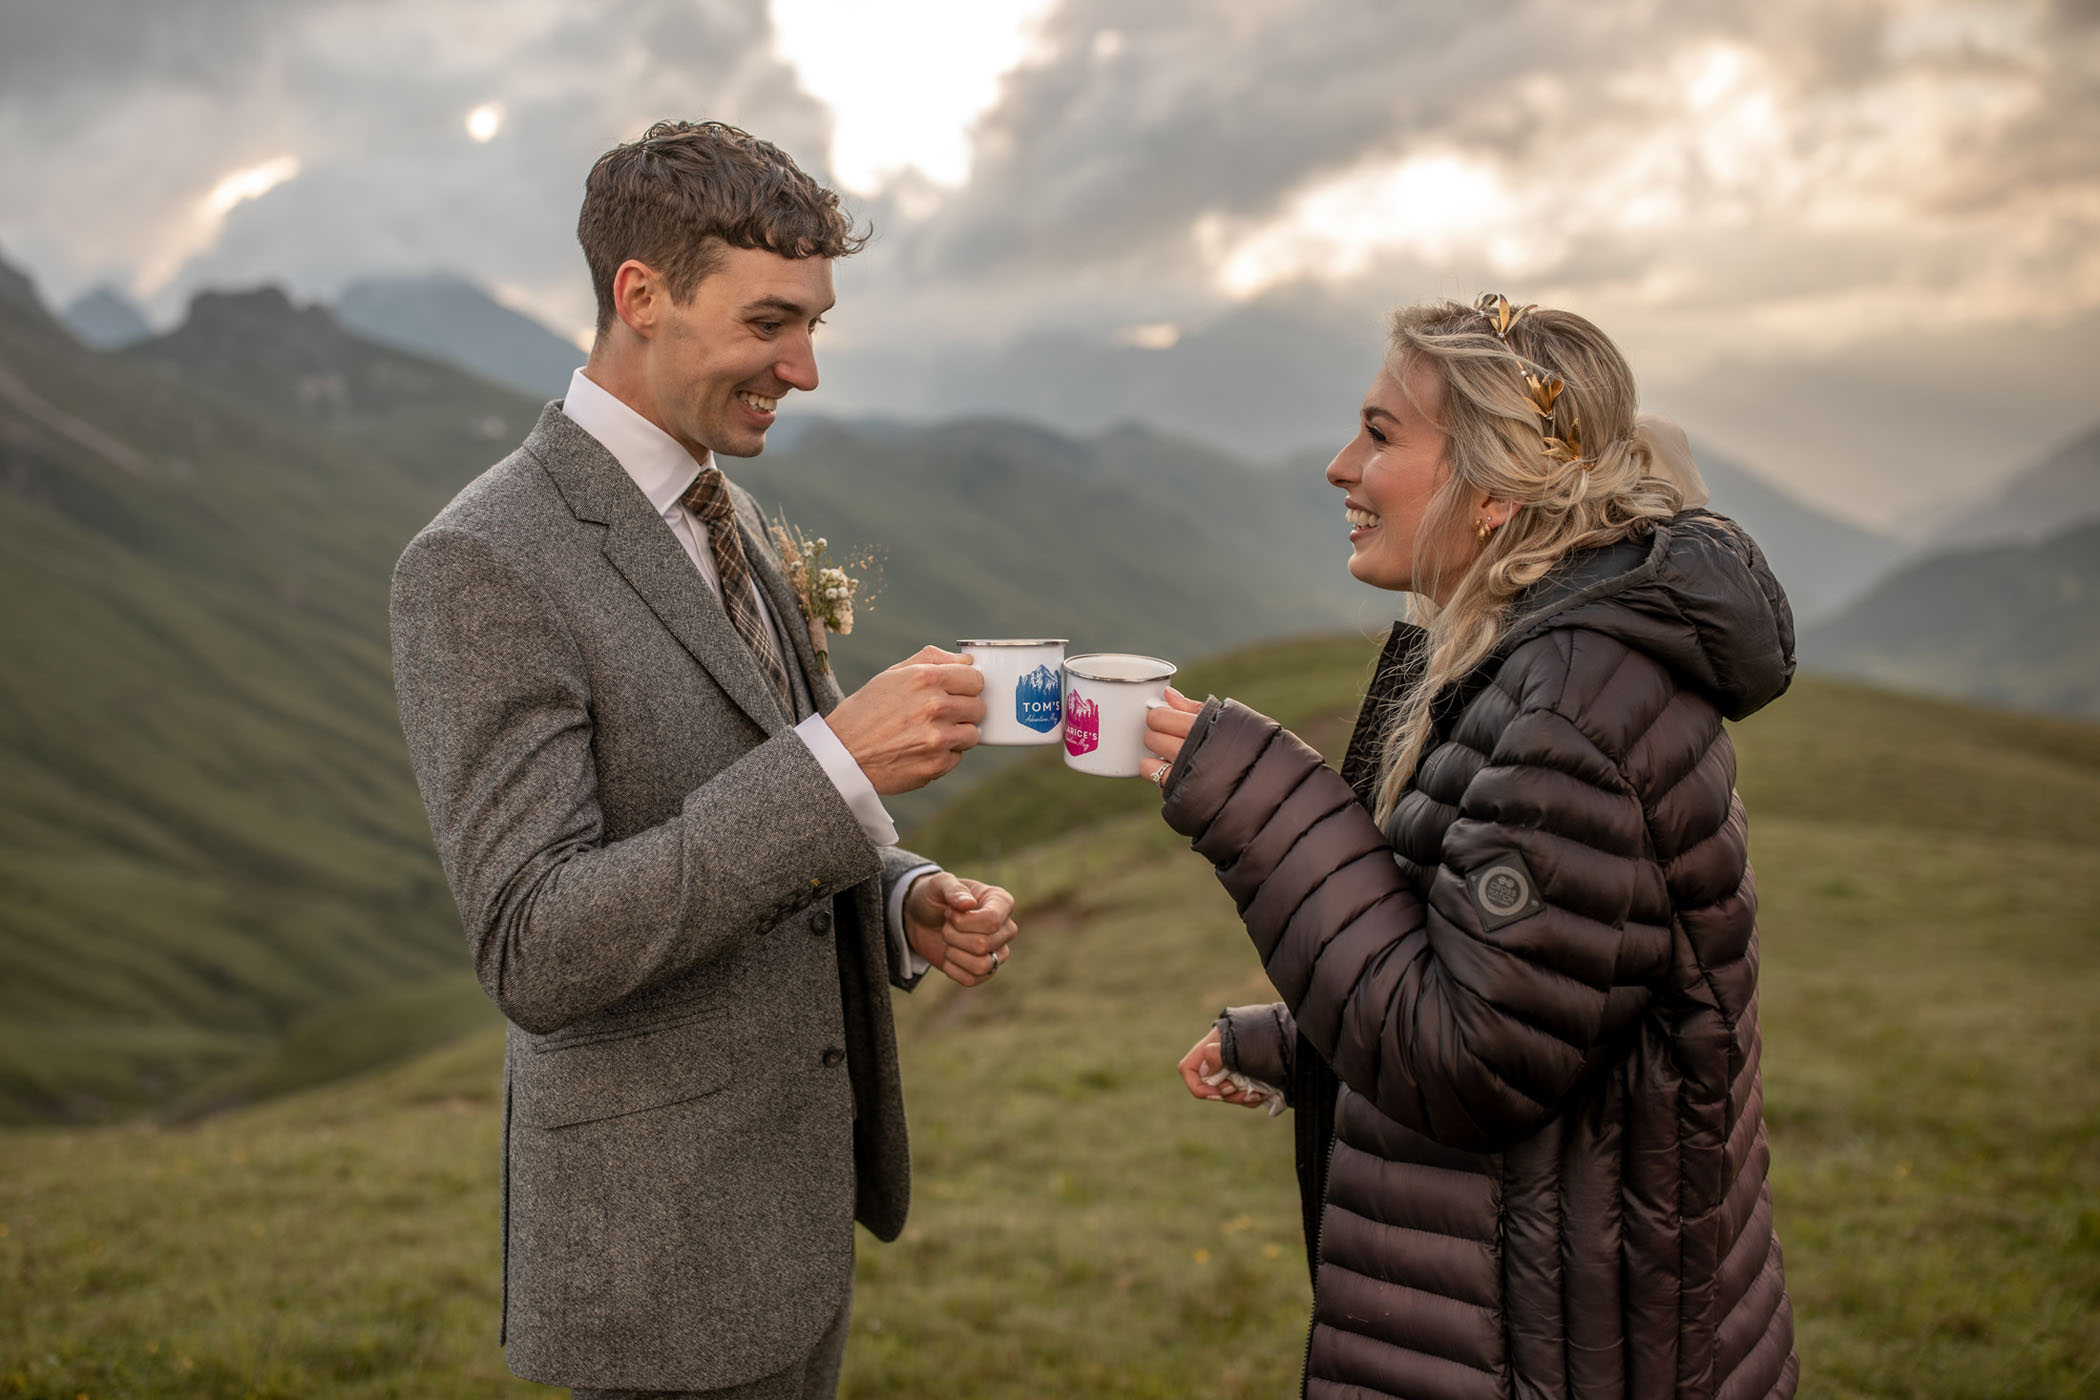 Bride and groom toasting with custom mugs on their wedding day